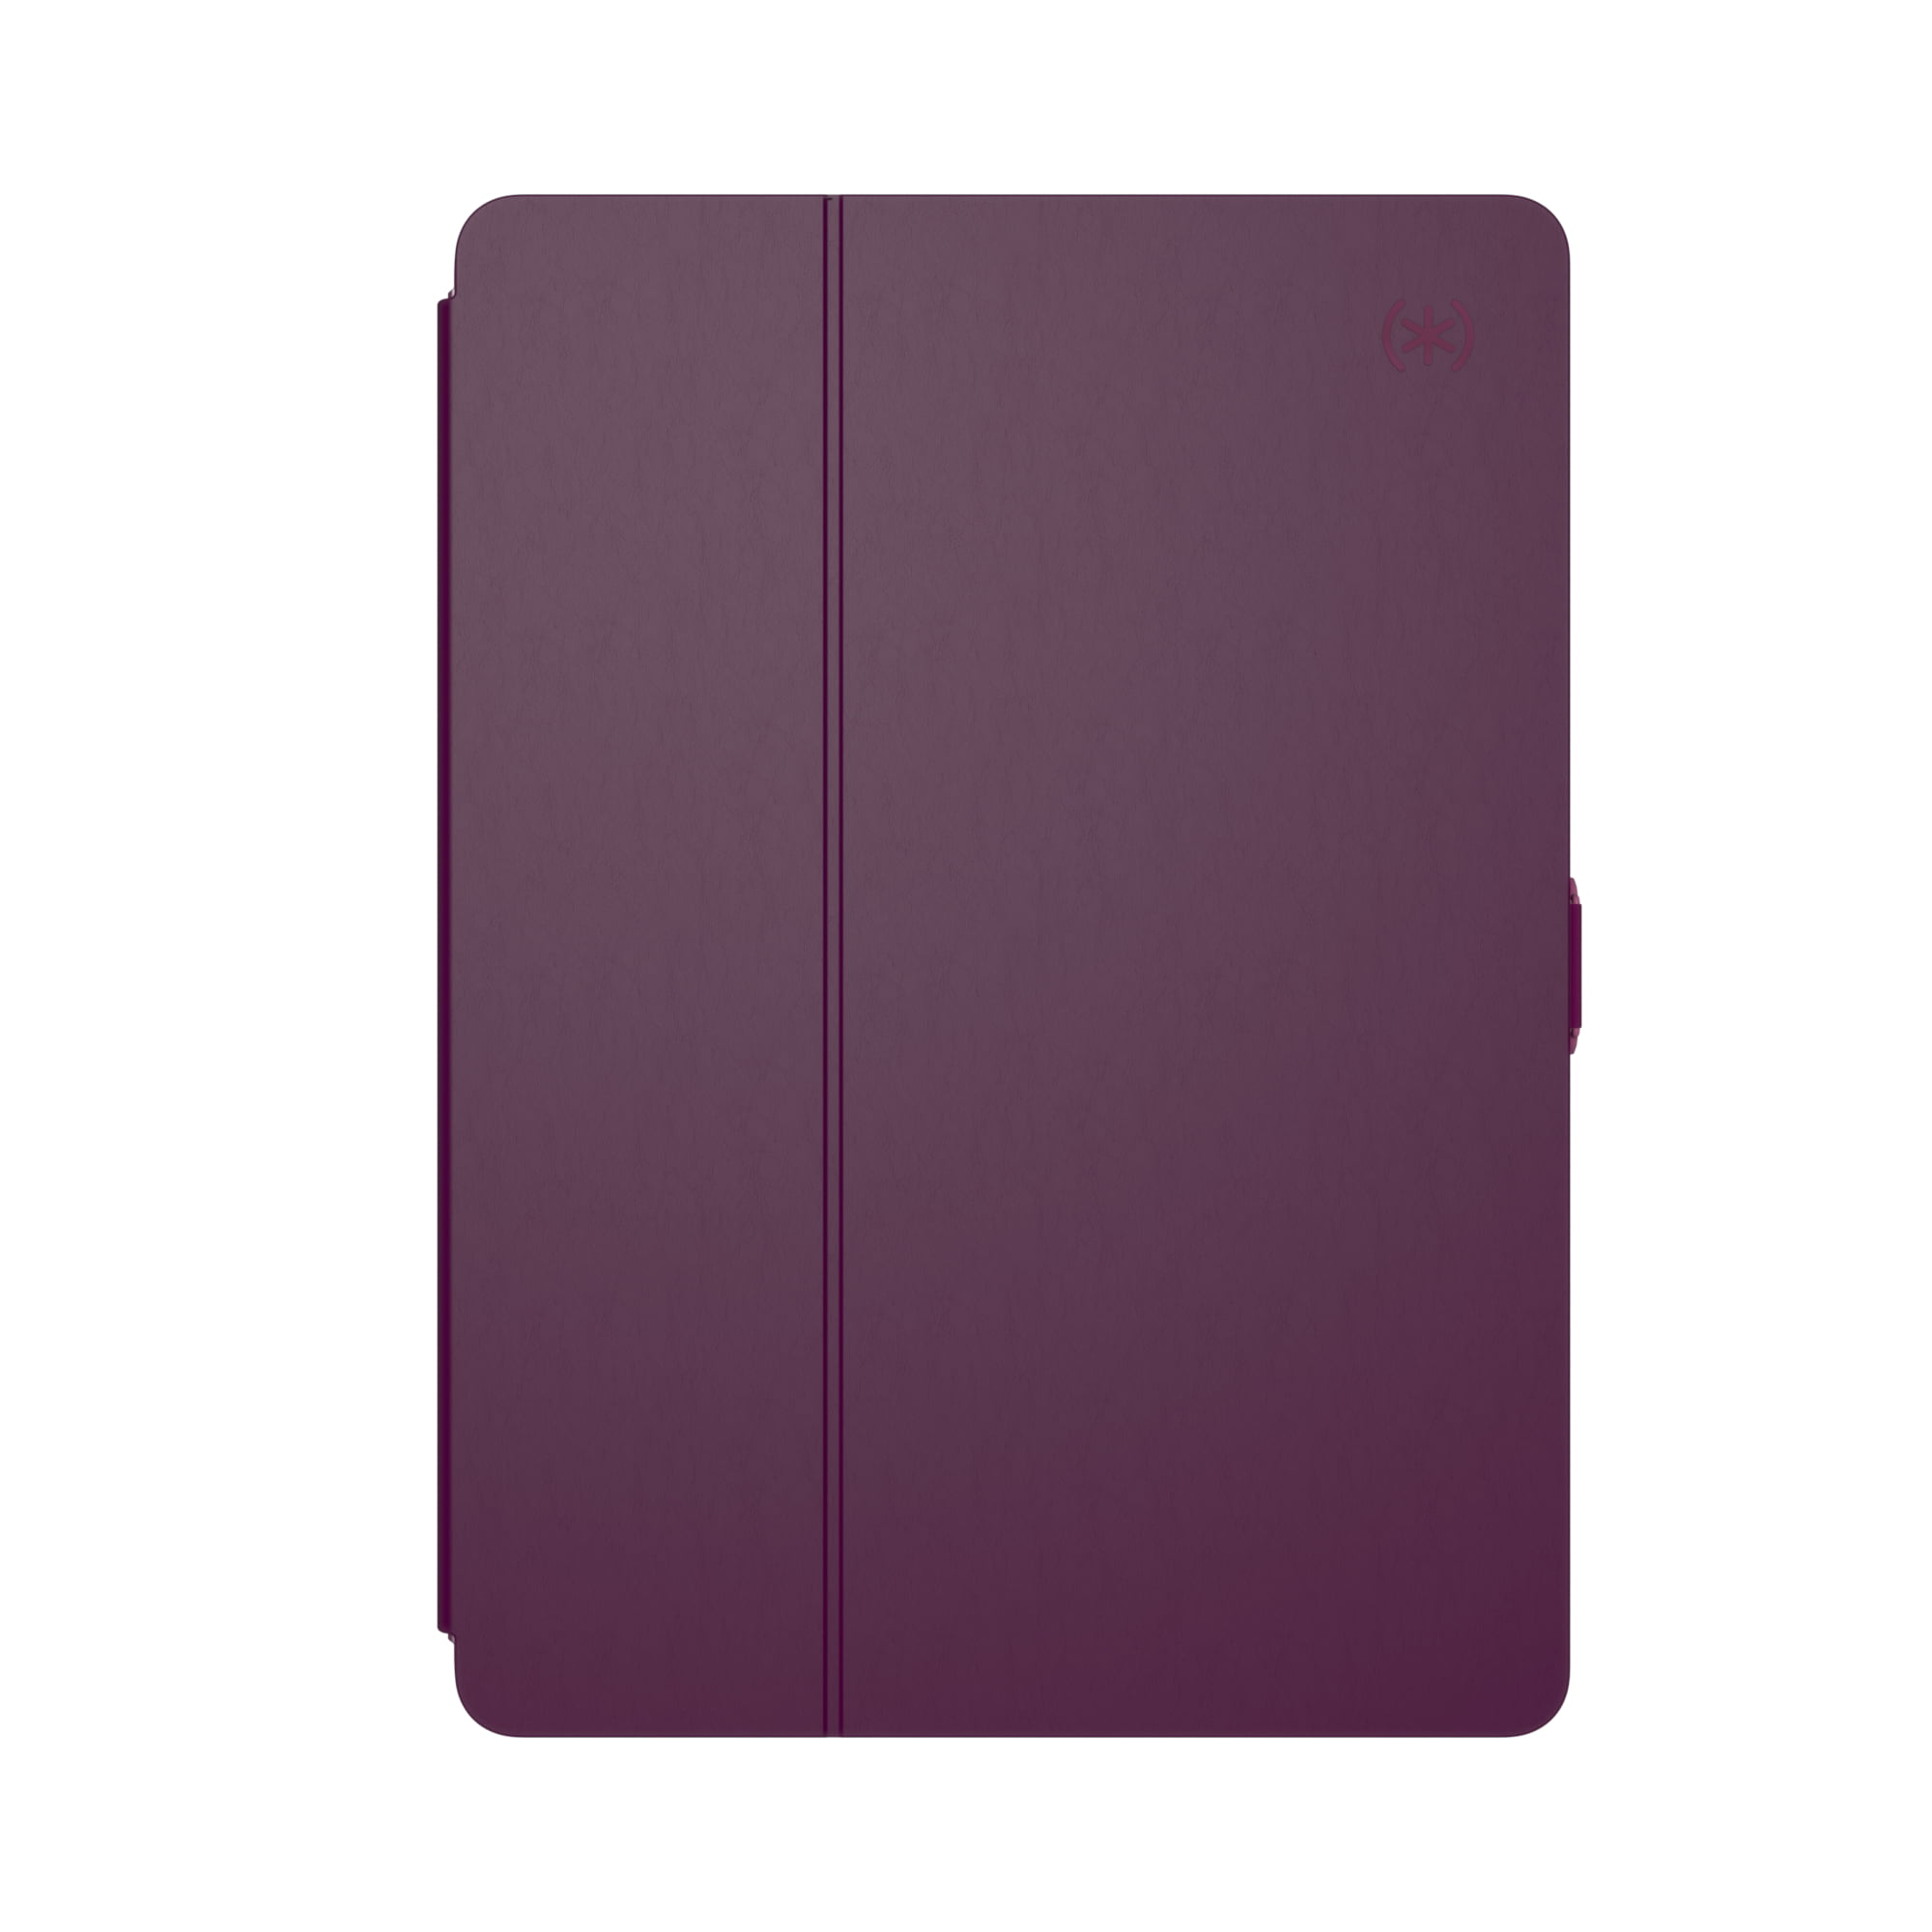 Speck iPad Stylefolio Pro Tablet Case, Purple & Gray